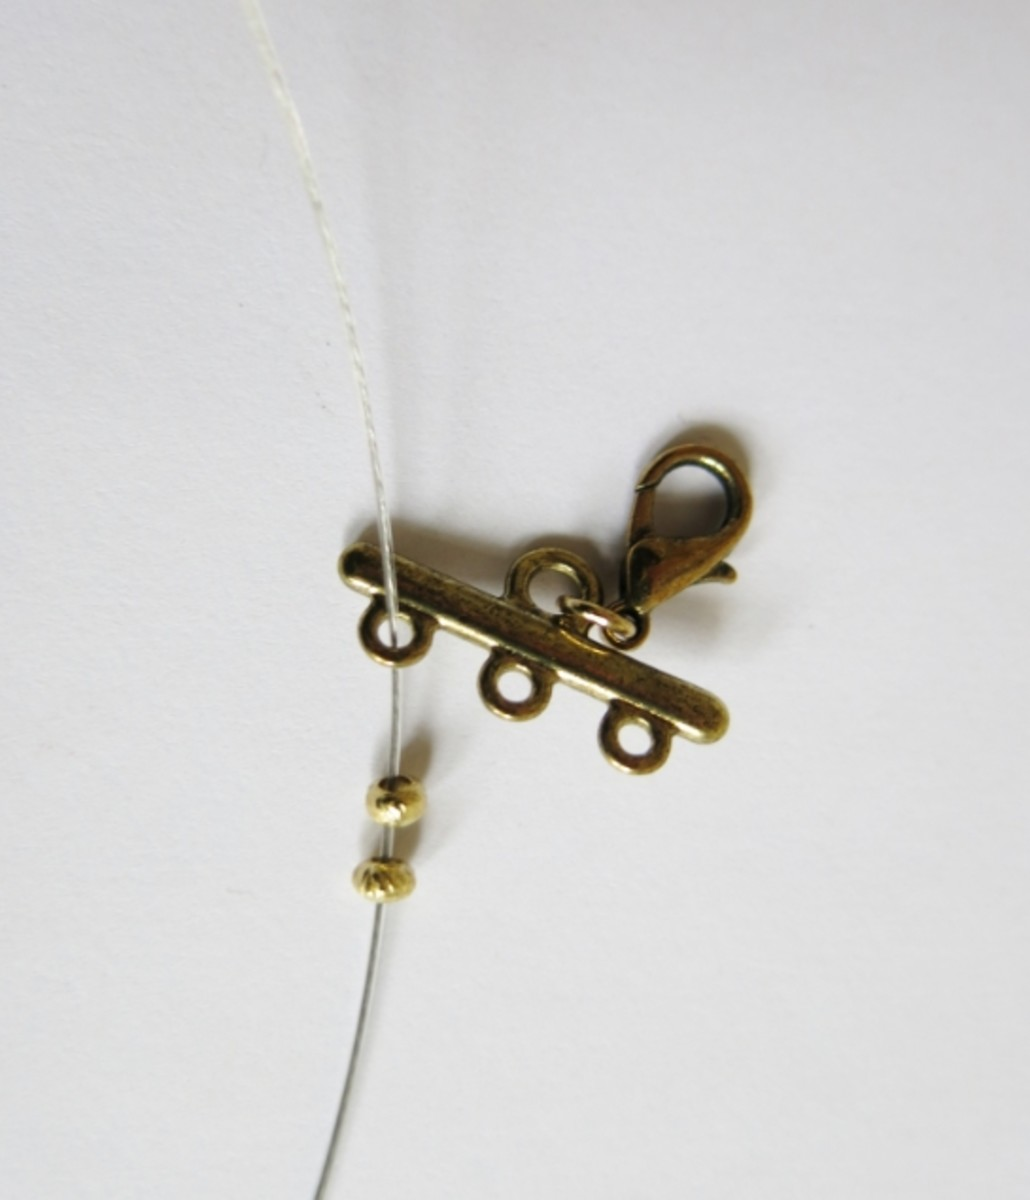 Attaching the clasp to your multi-stranded necklace.